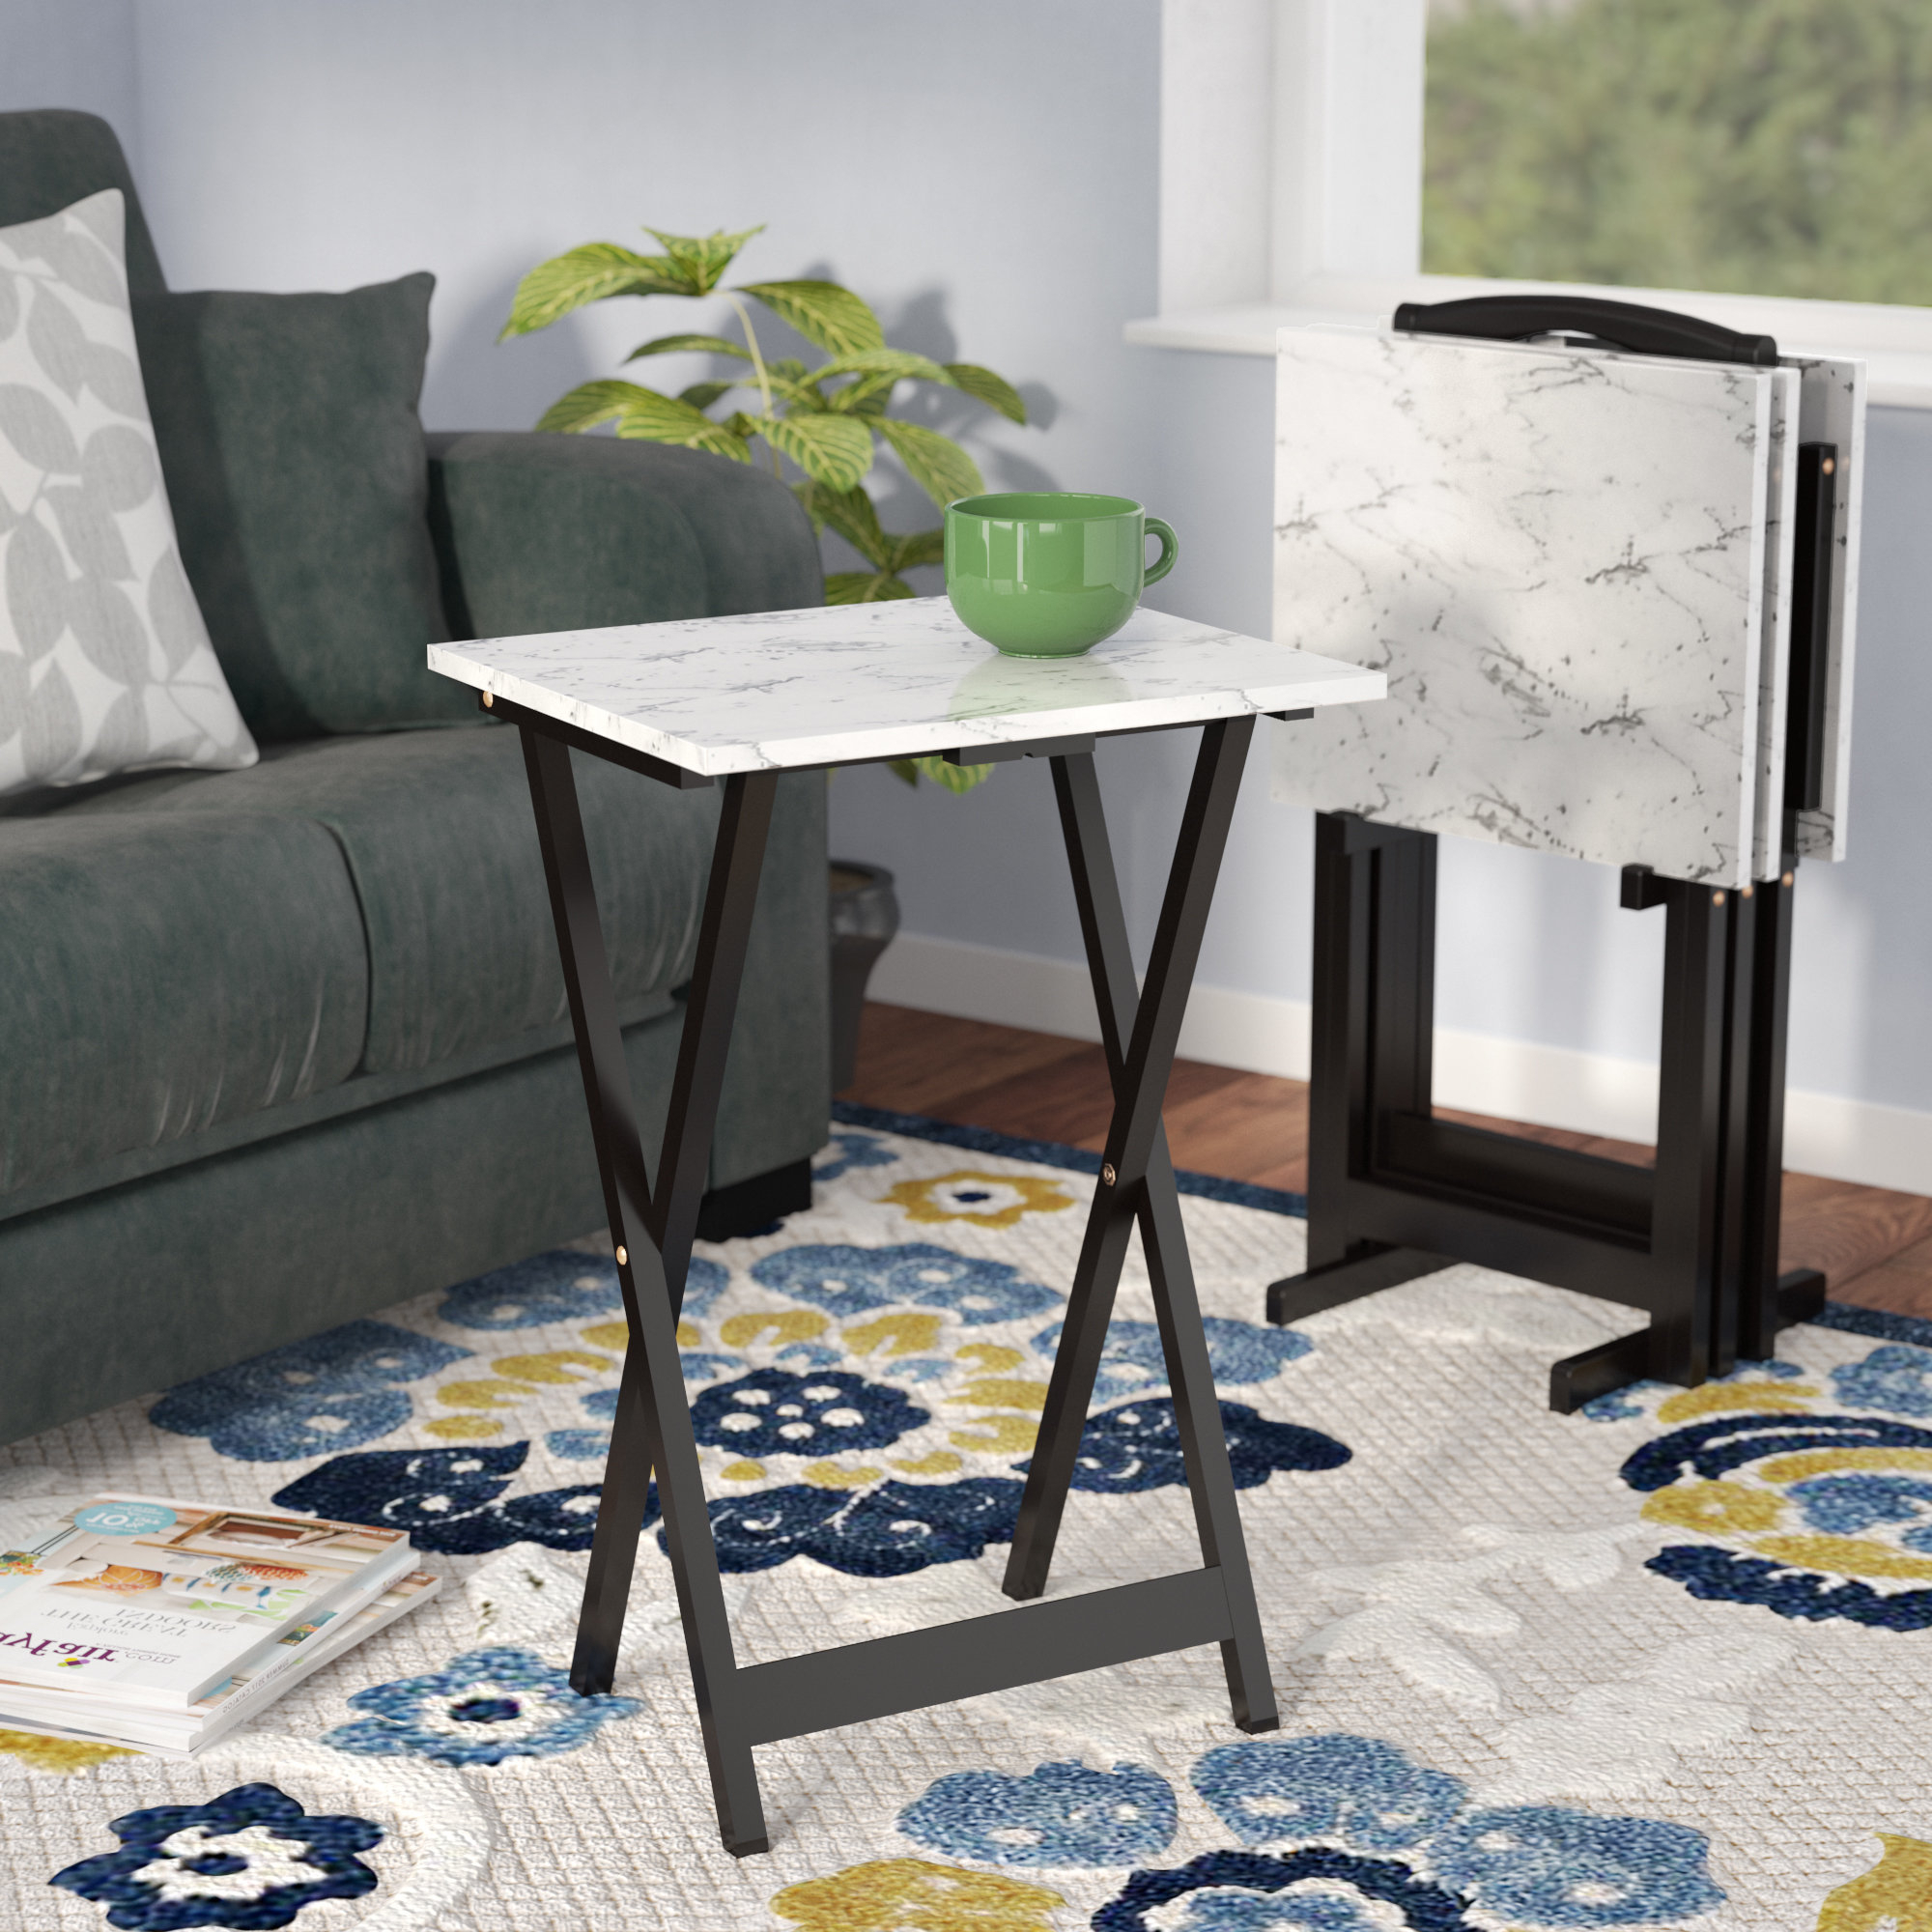 Most Up To Date Folding Tv Trays With Stand Intended For Tv Trays You'll Love (View 16 of 20)